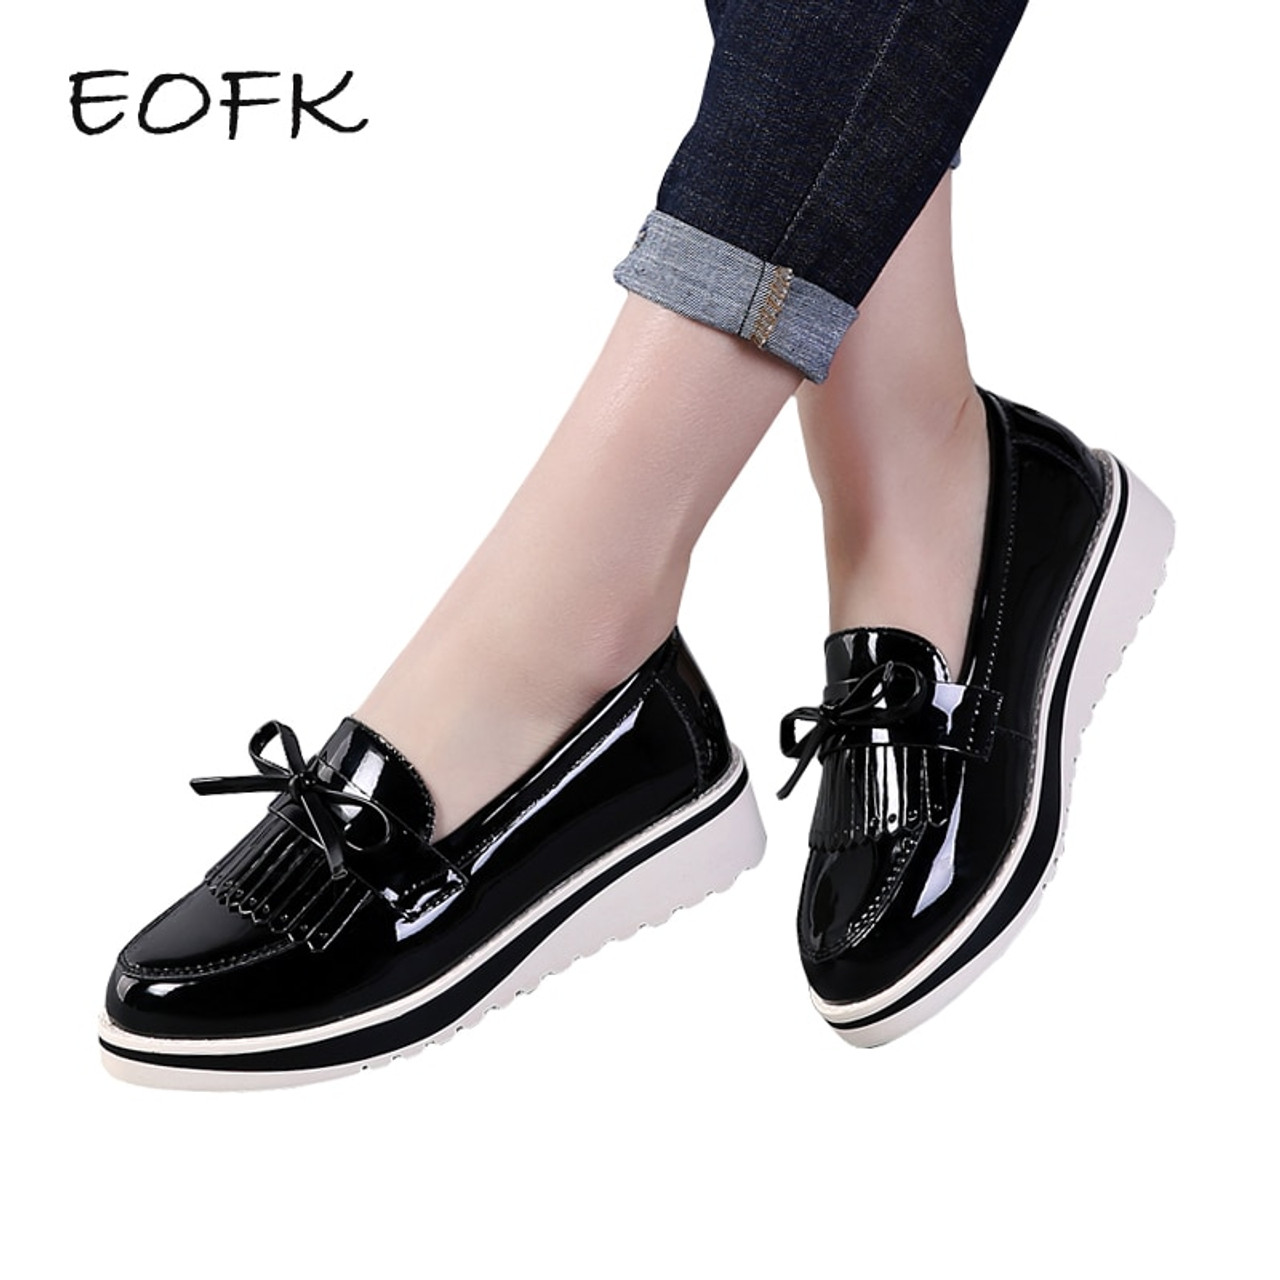 ada94a1abcd EOFK Flat Shoes Women Autumn Black Patent Leather Slip On Fringe Sweet  Woman Casual Loafers Women s ...